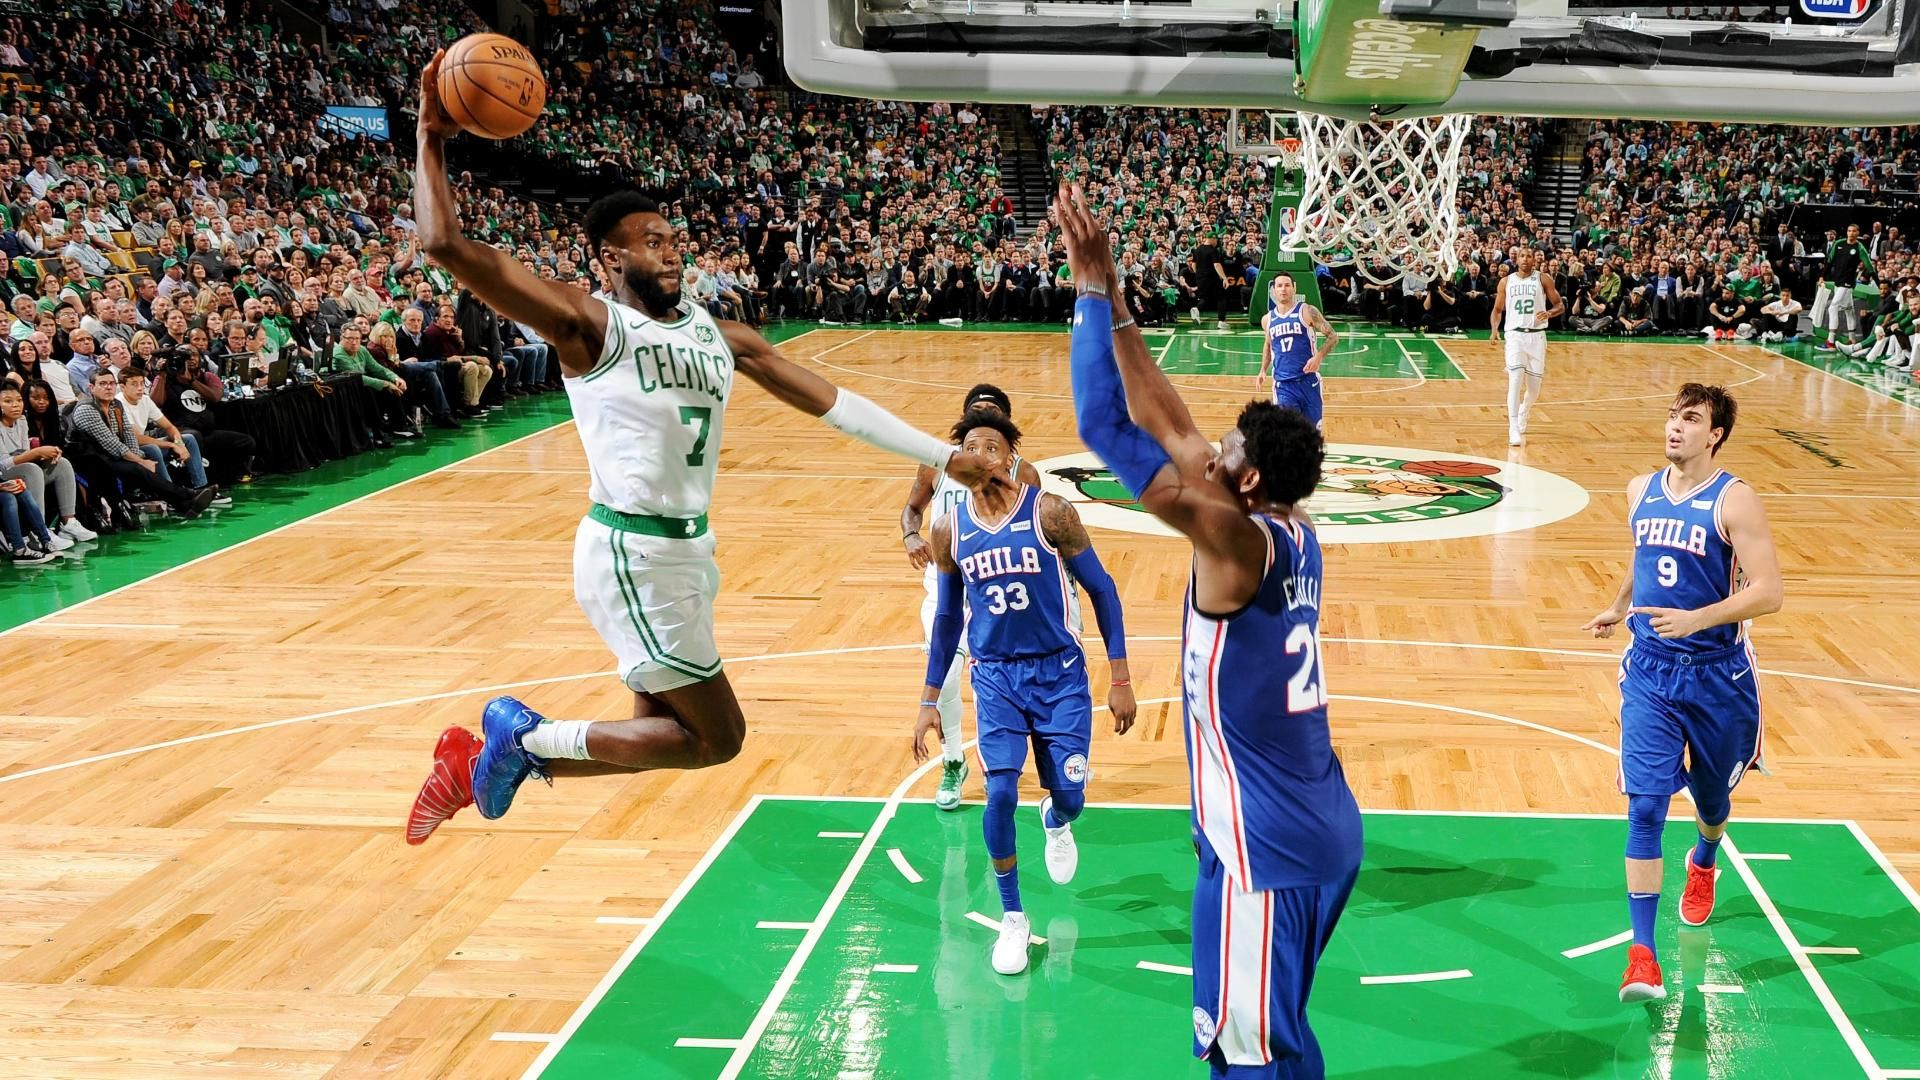 https://secure.espncdn.com/combiner/i?img=/media/motion/2018/1016/dm_181016_NBA_OnePlay_Brown_basket_over_Embiid1380/dm_181016_NBA_OnePlay_Brown_basket_over_Embiid1380.jpg